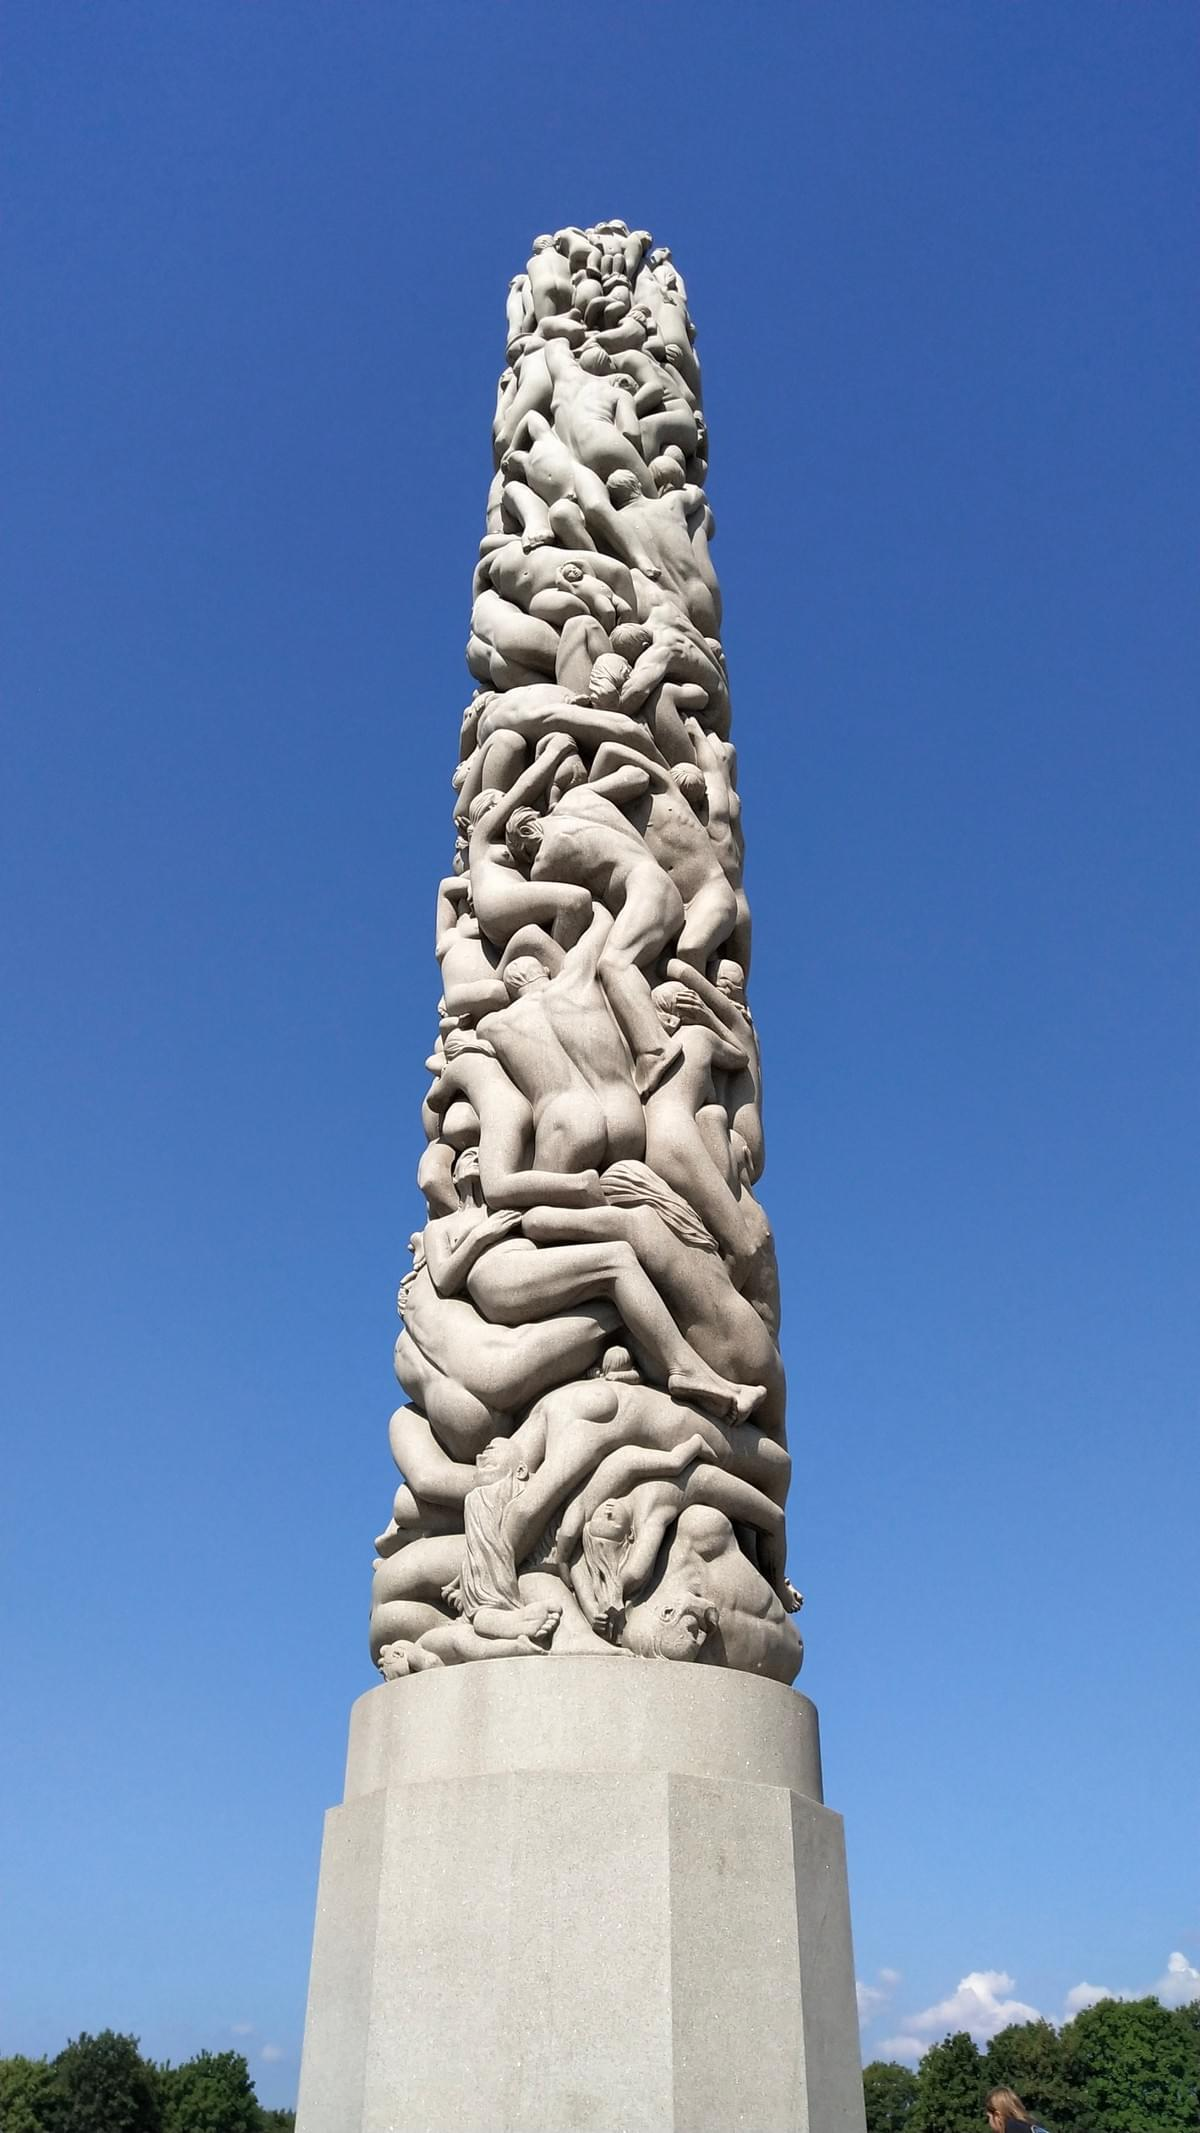 Places to Visit in Oslo - Human Sculpture Obelisk